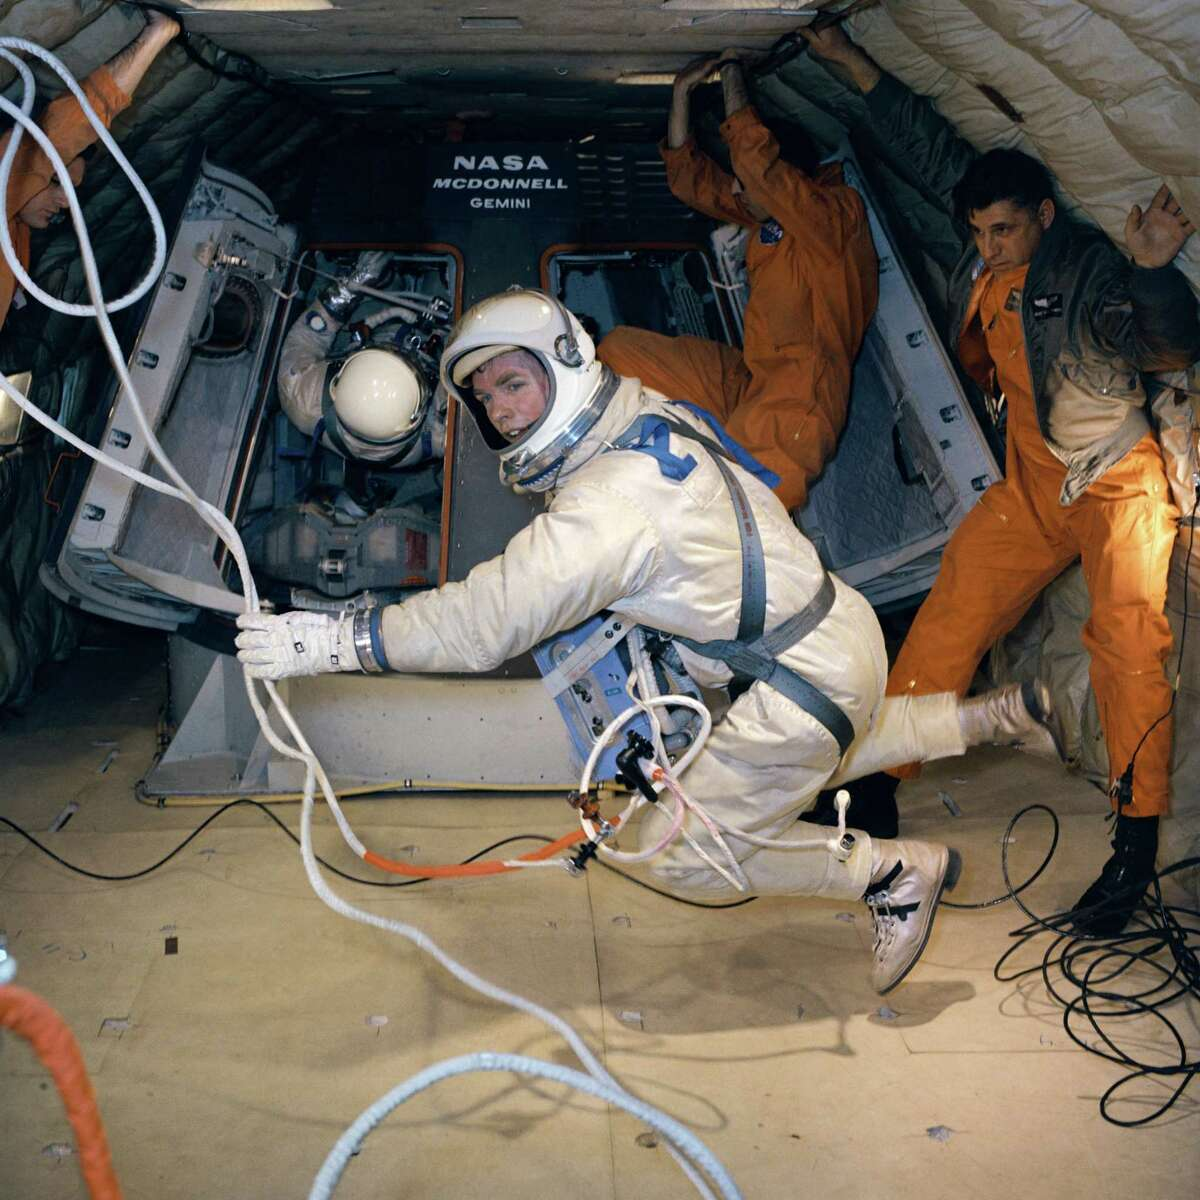 In this Feb. 18, 1966 photo, astronaut David R. Scott holds a maneuvering unit while suspended in a weightless state during extravehicular activity training in a C-135 Air Force plane.